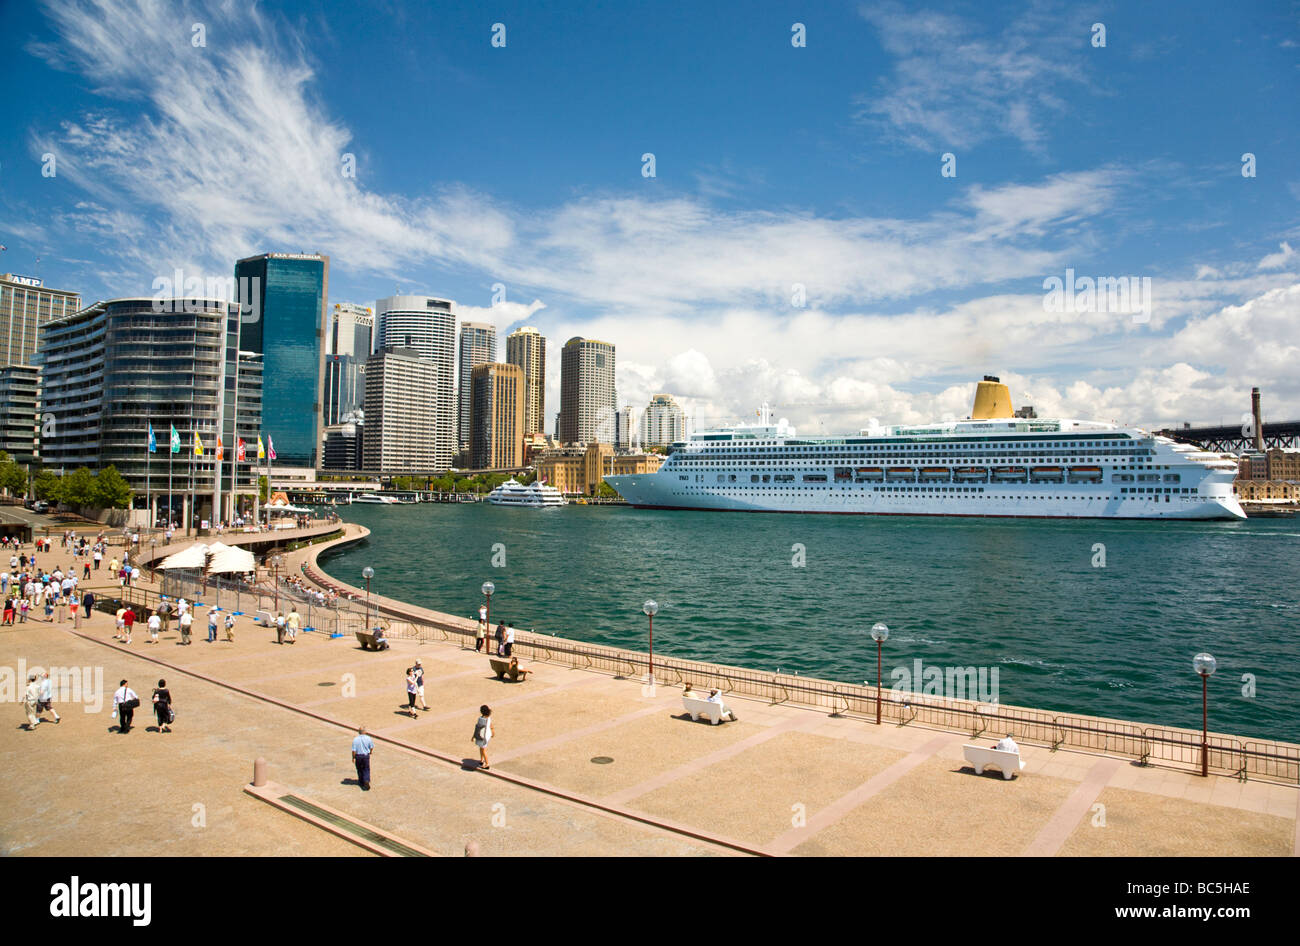 Circular Quay and Sydney Cove, Sydney New South Wales Australia - Stock Image